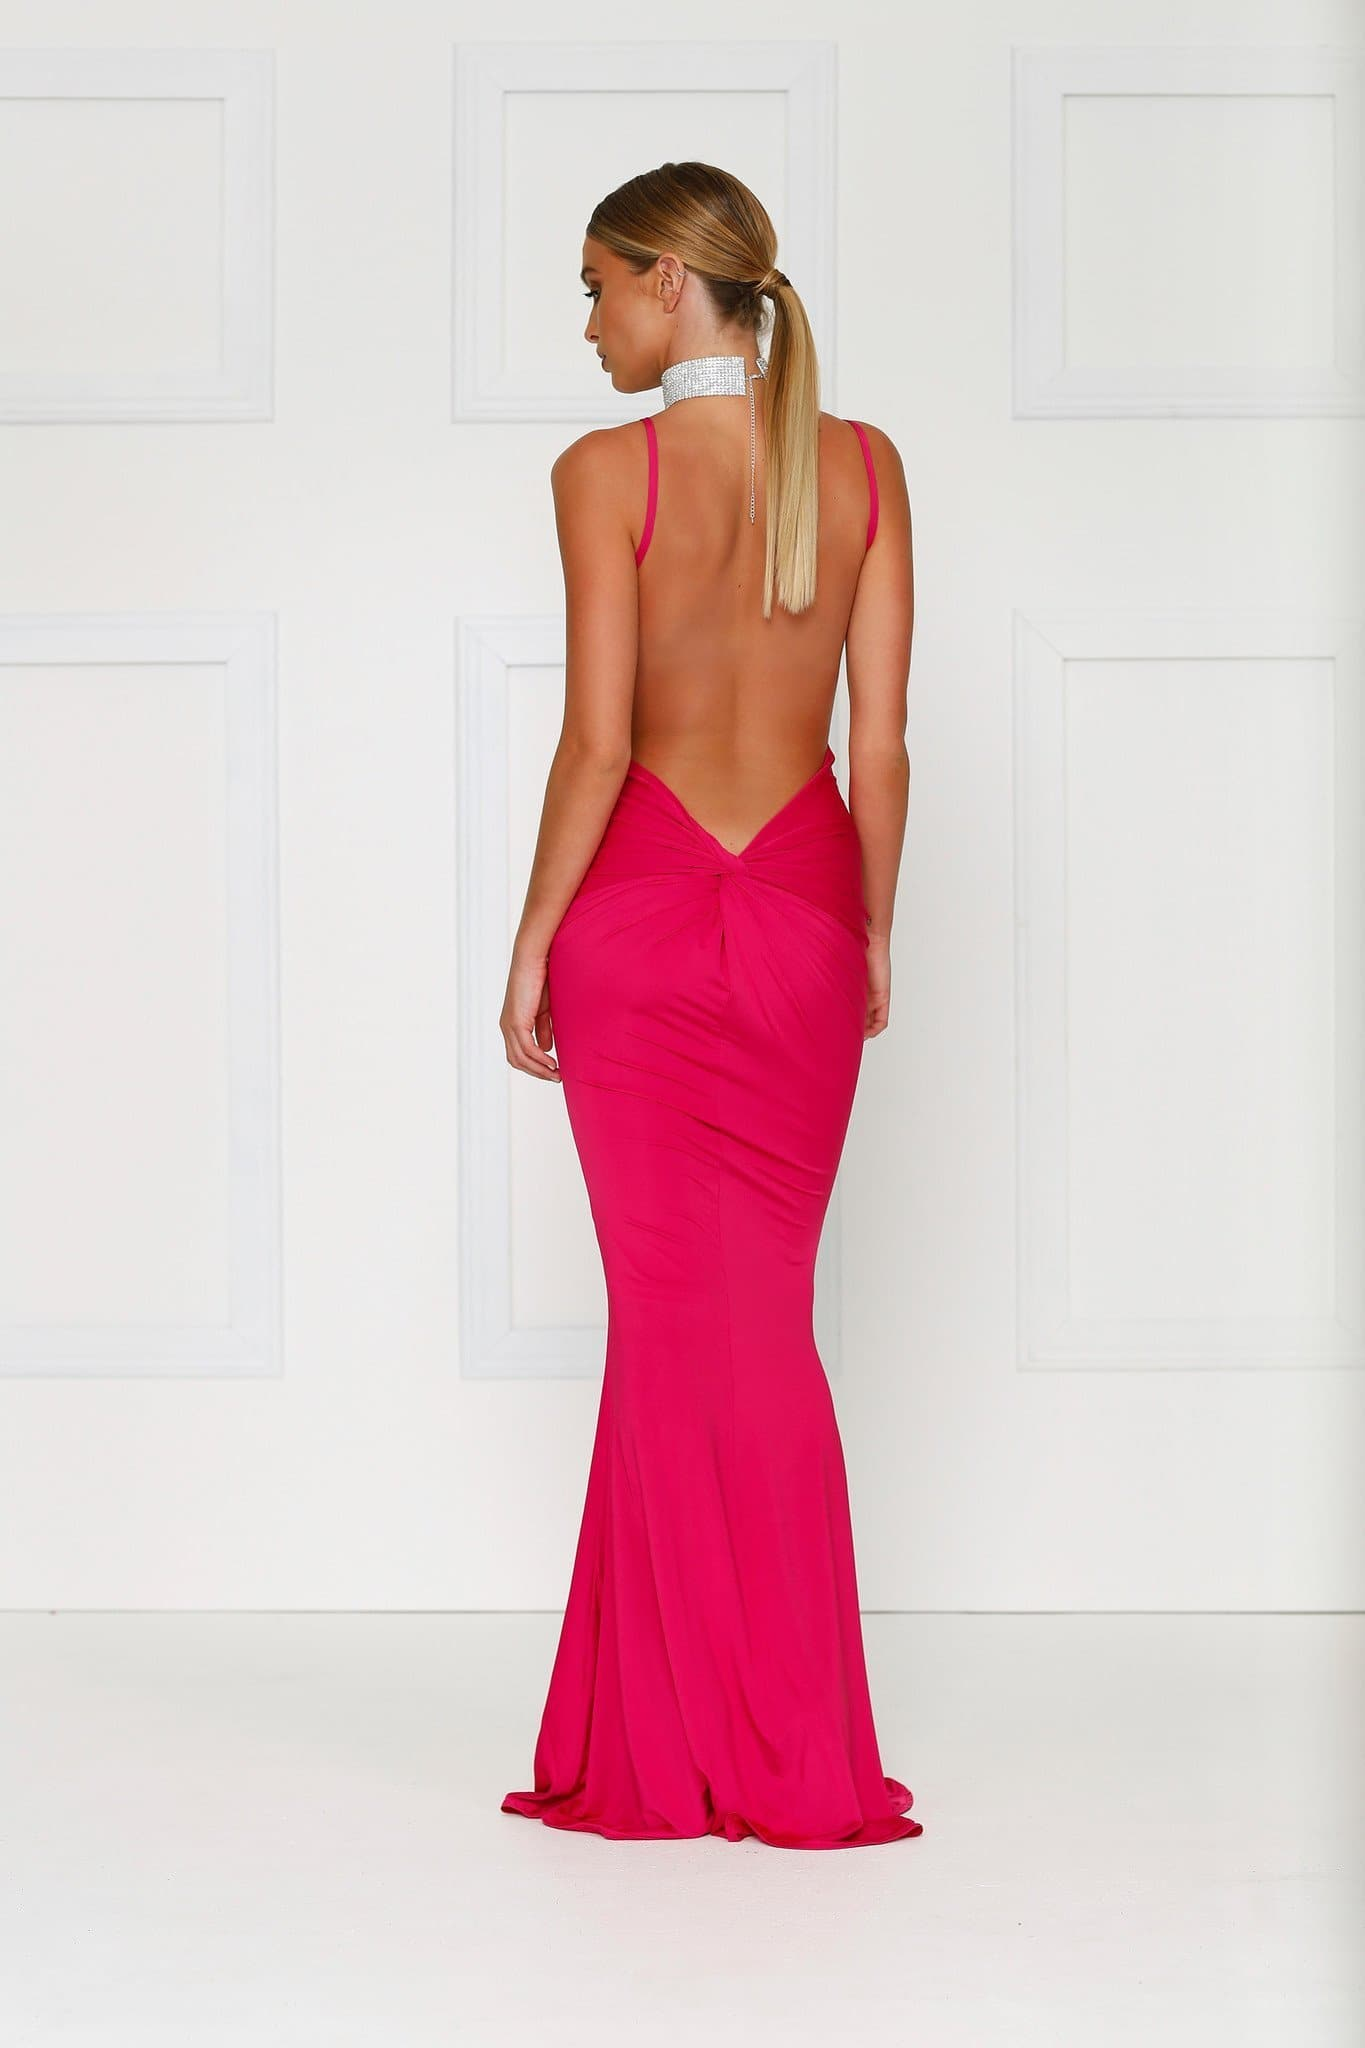 Penelope Luxe - Hot Pink Backless Dress with Back Knot Design